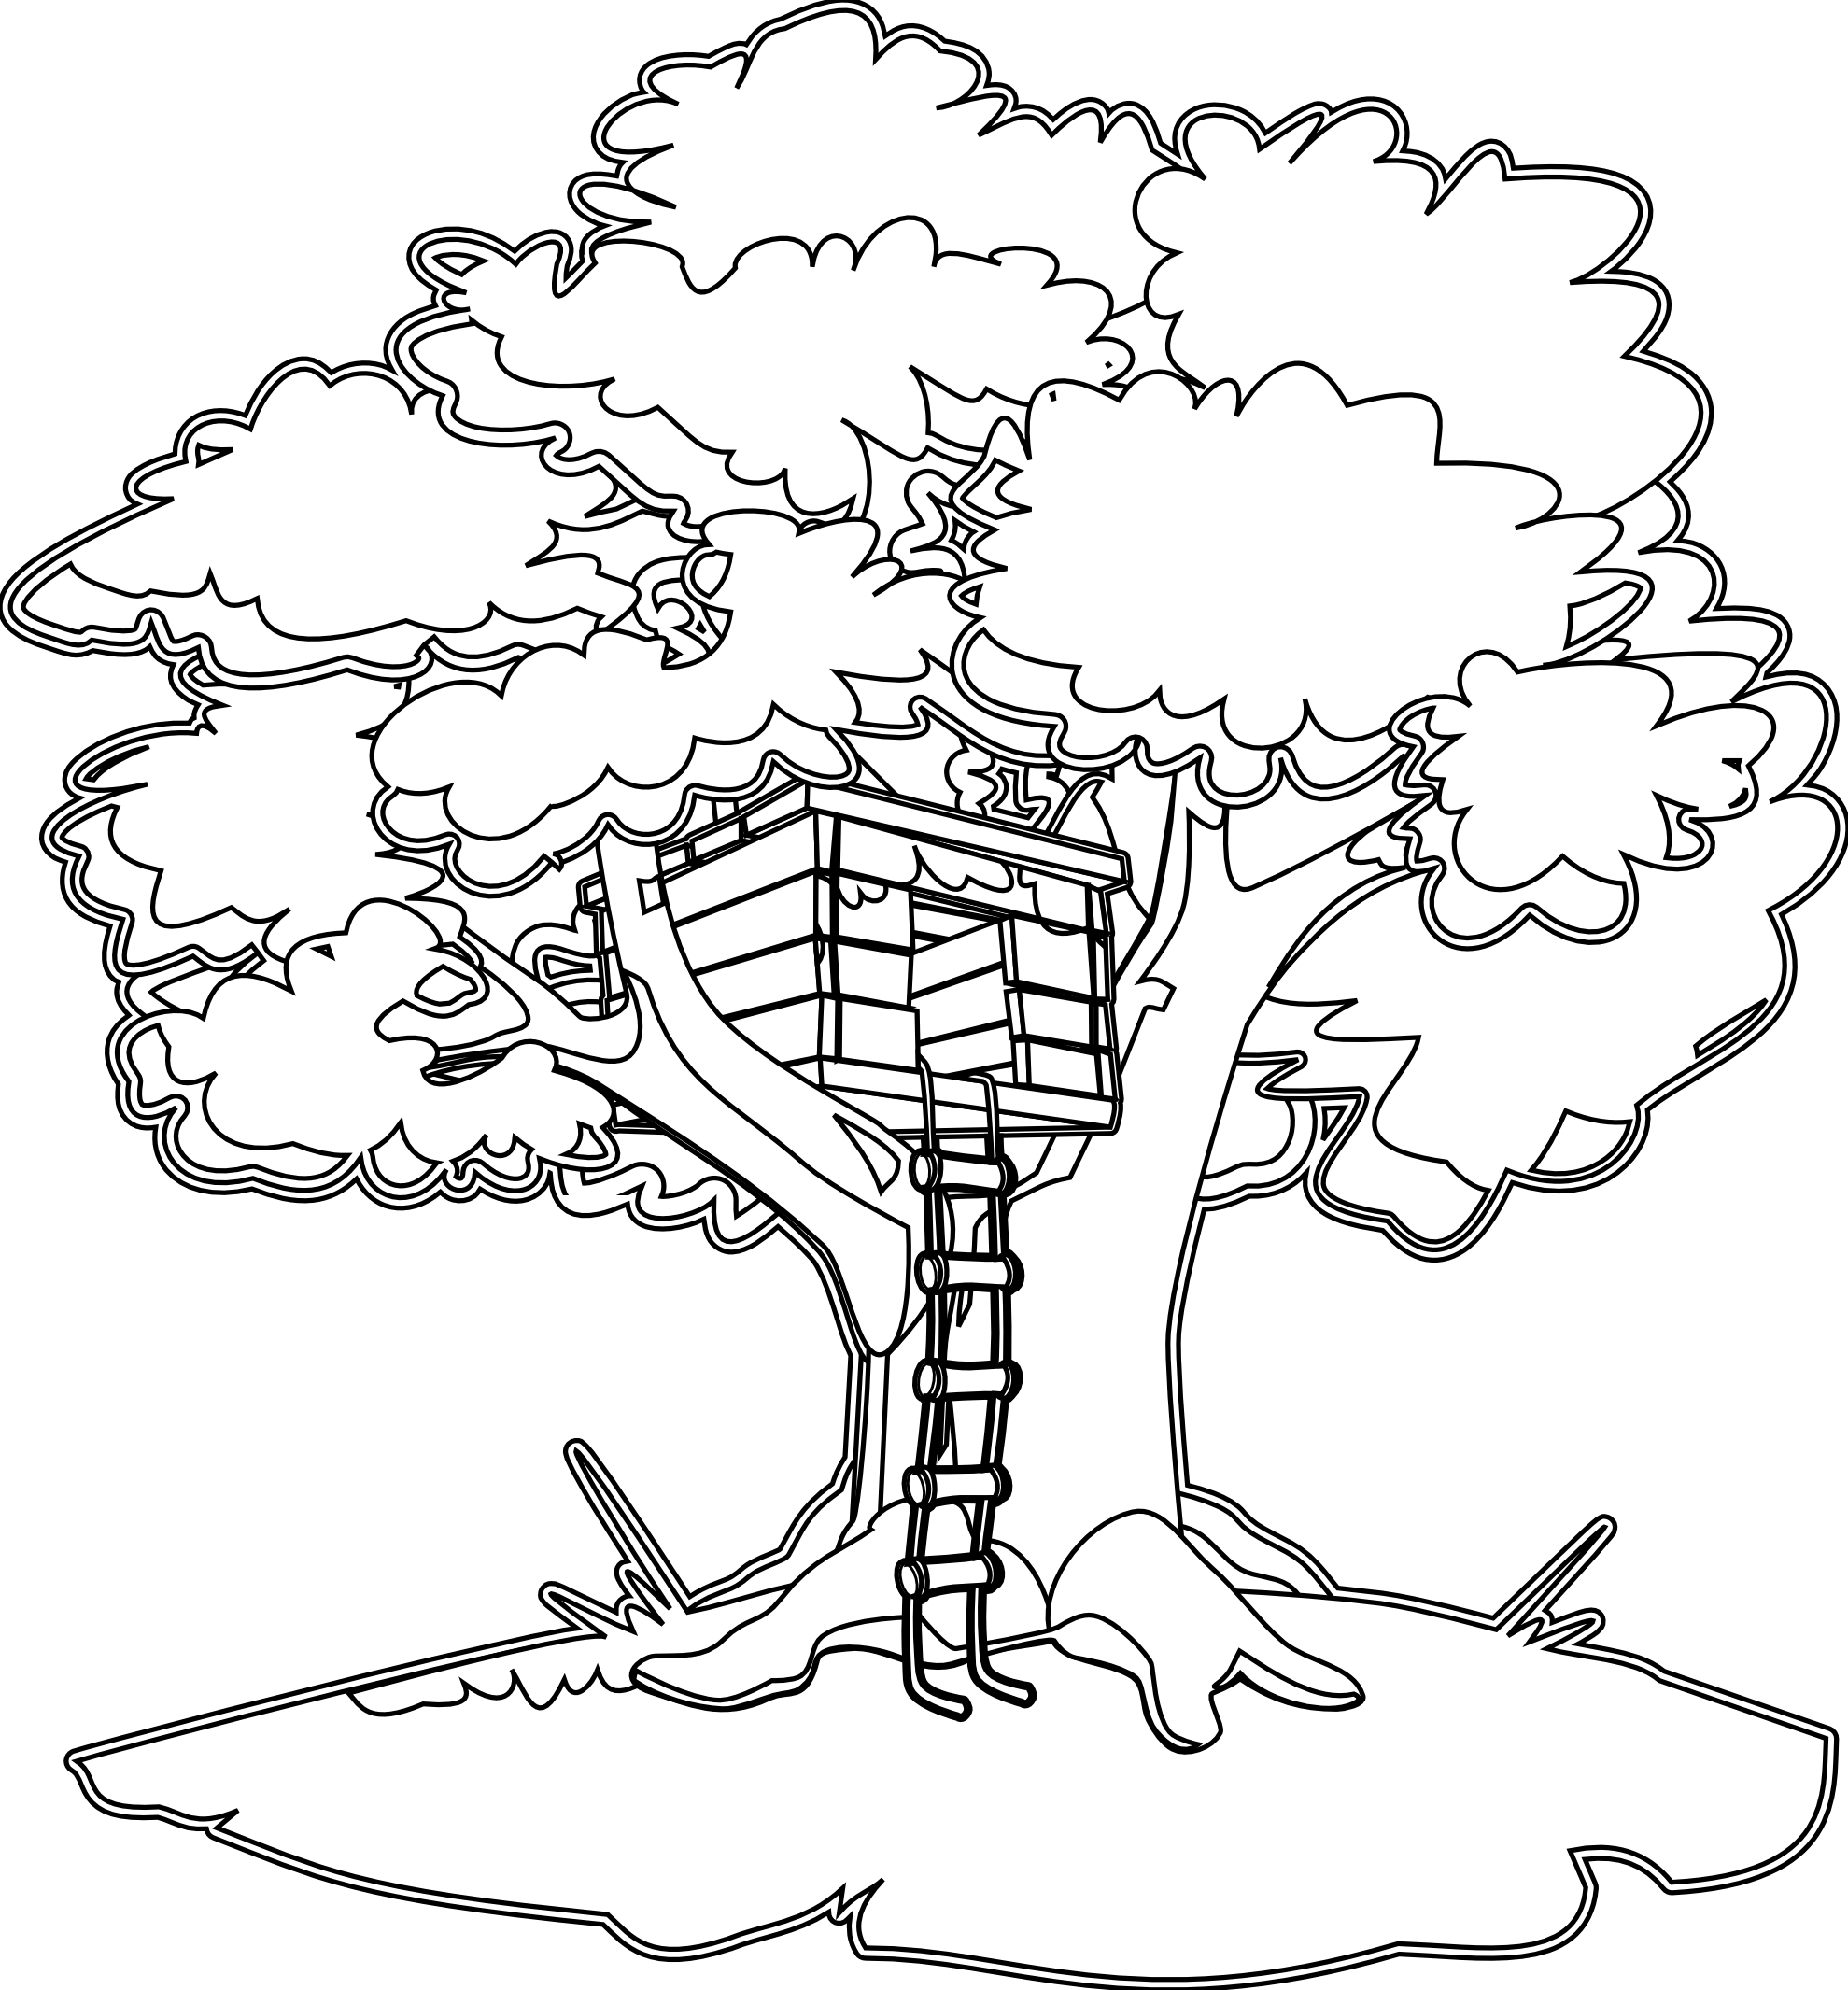 Magic tree house clipart svg freeuse library Magic Tree House Coloring Pages Free Coloring Pages Download | Xsibe ... svg freeuse library